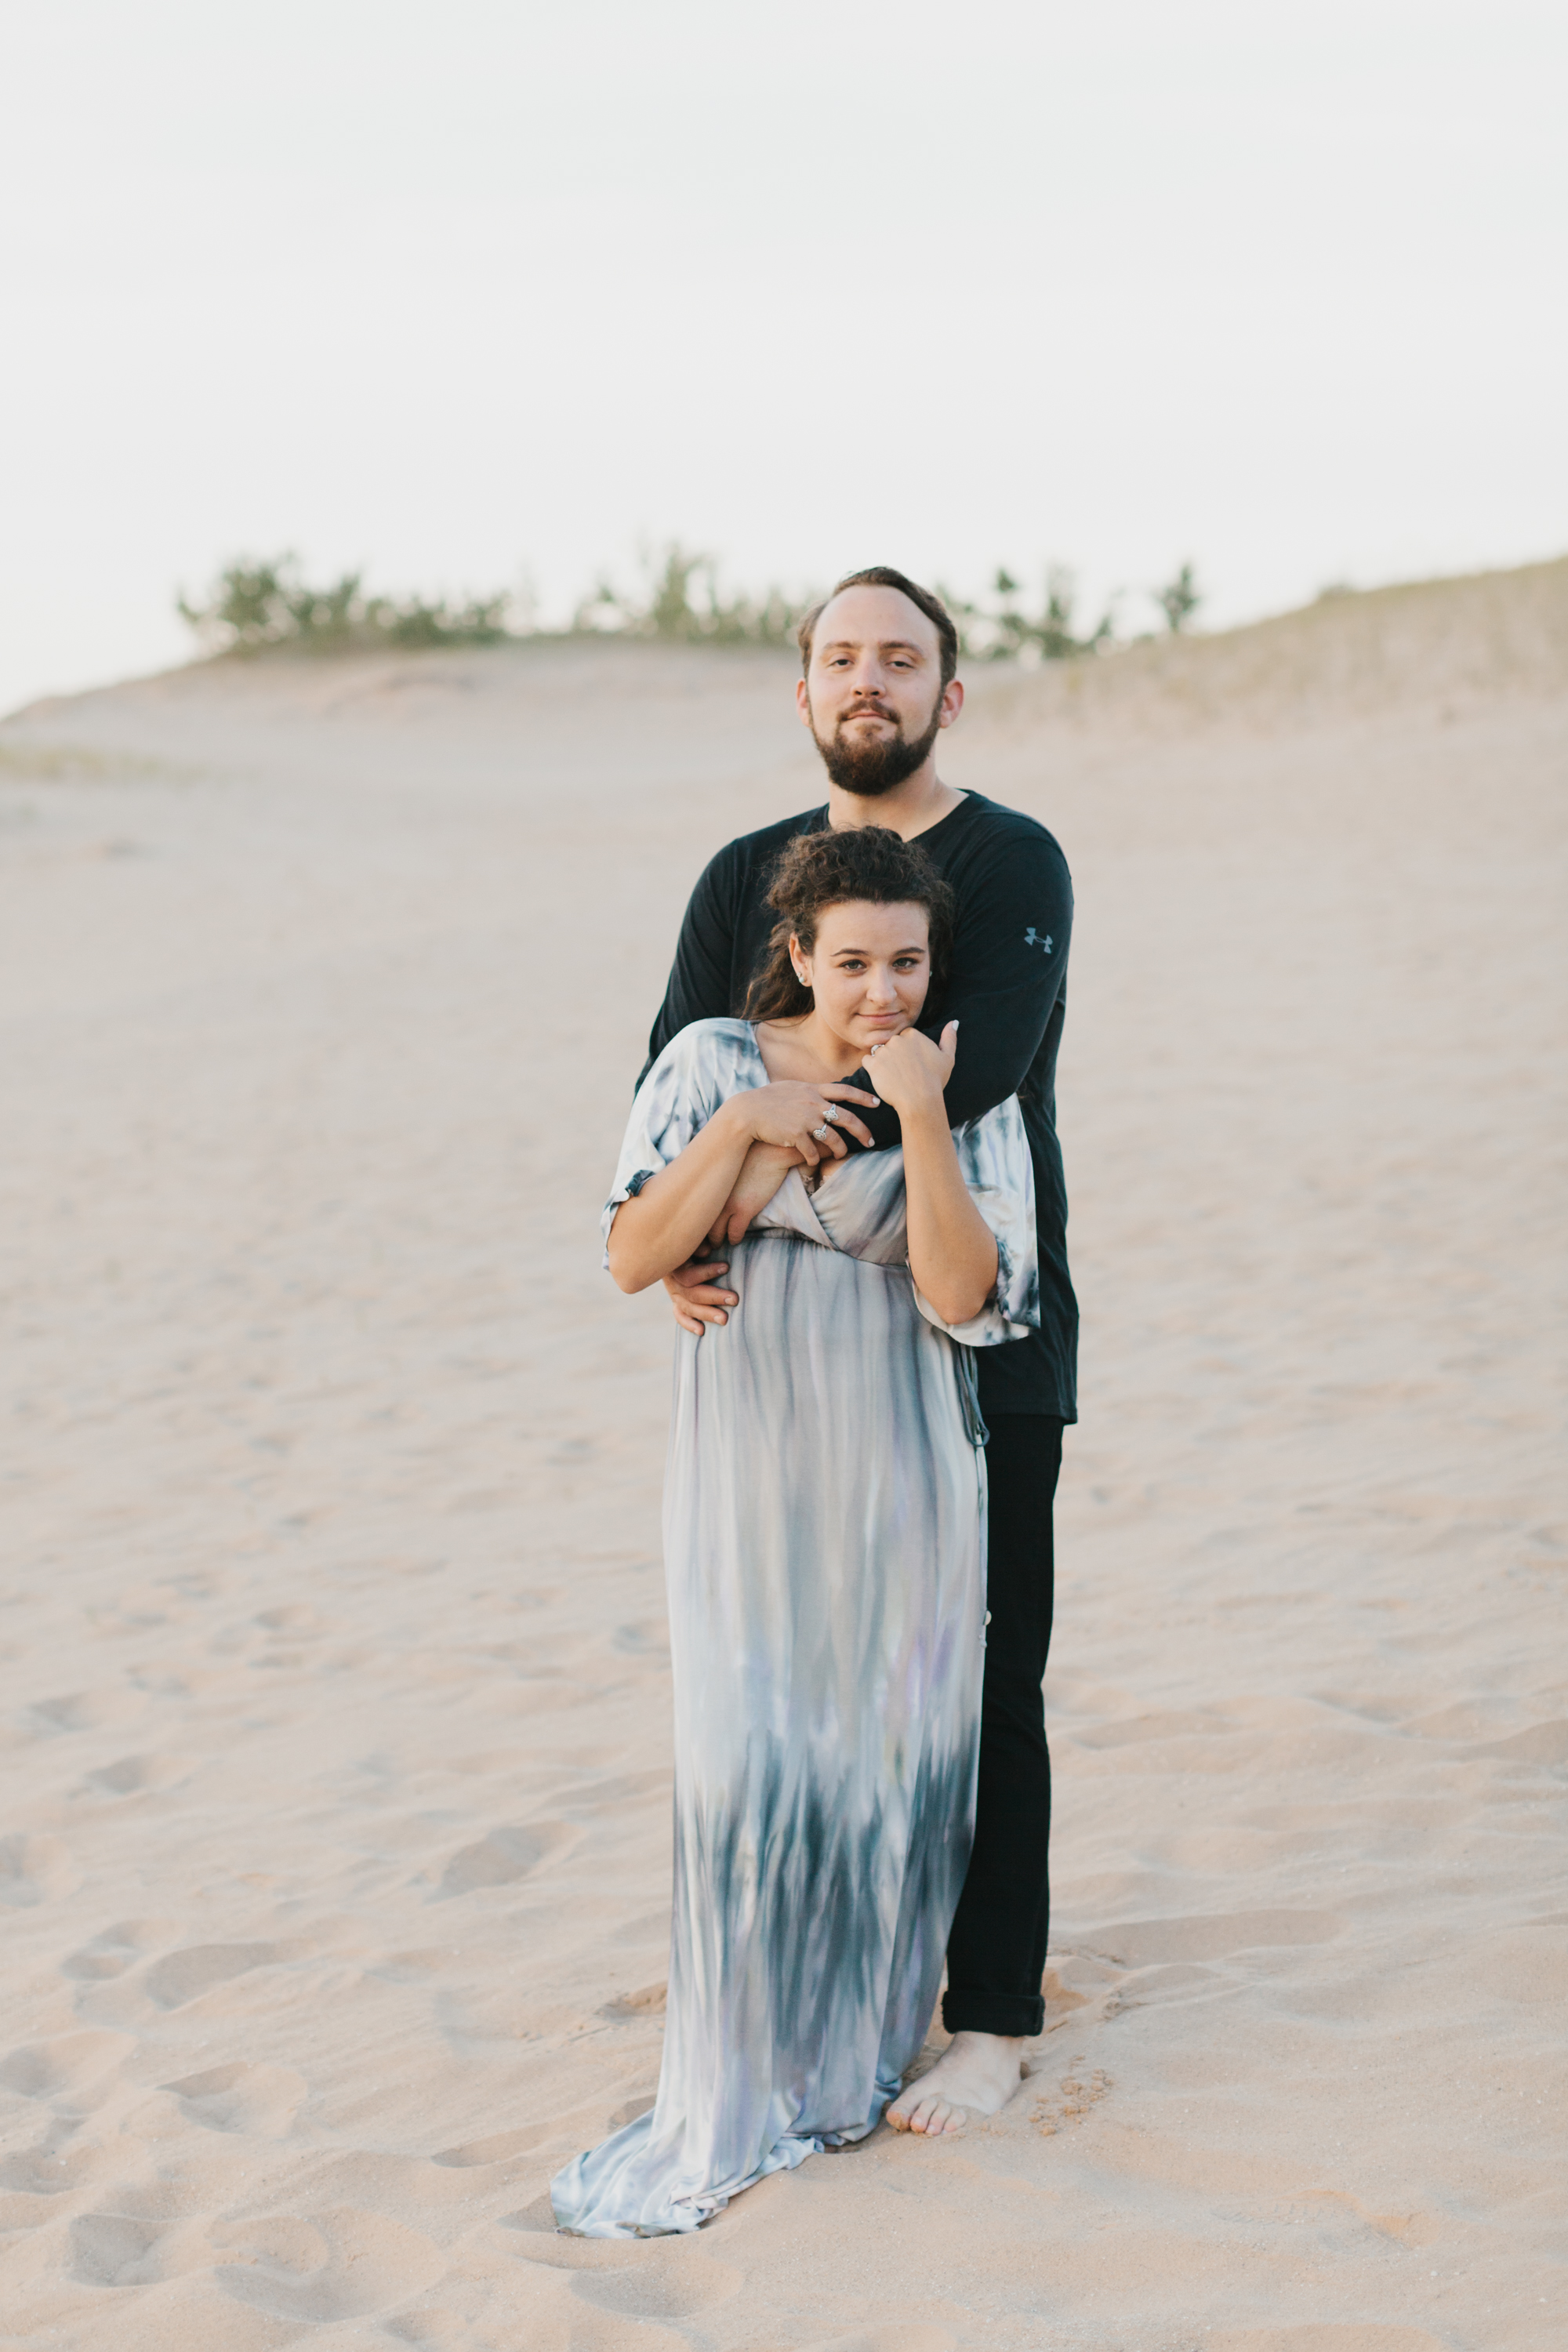 Northern Michigan Sleeping Bear Dunes Wedding Engagement Photographer Mae Stier-027.jpg